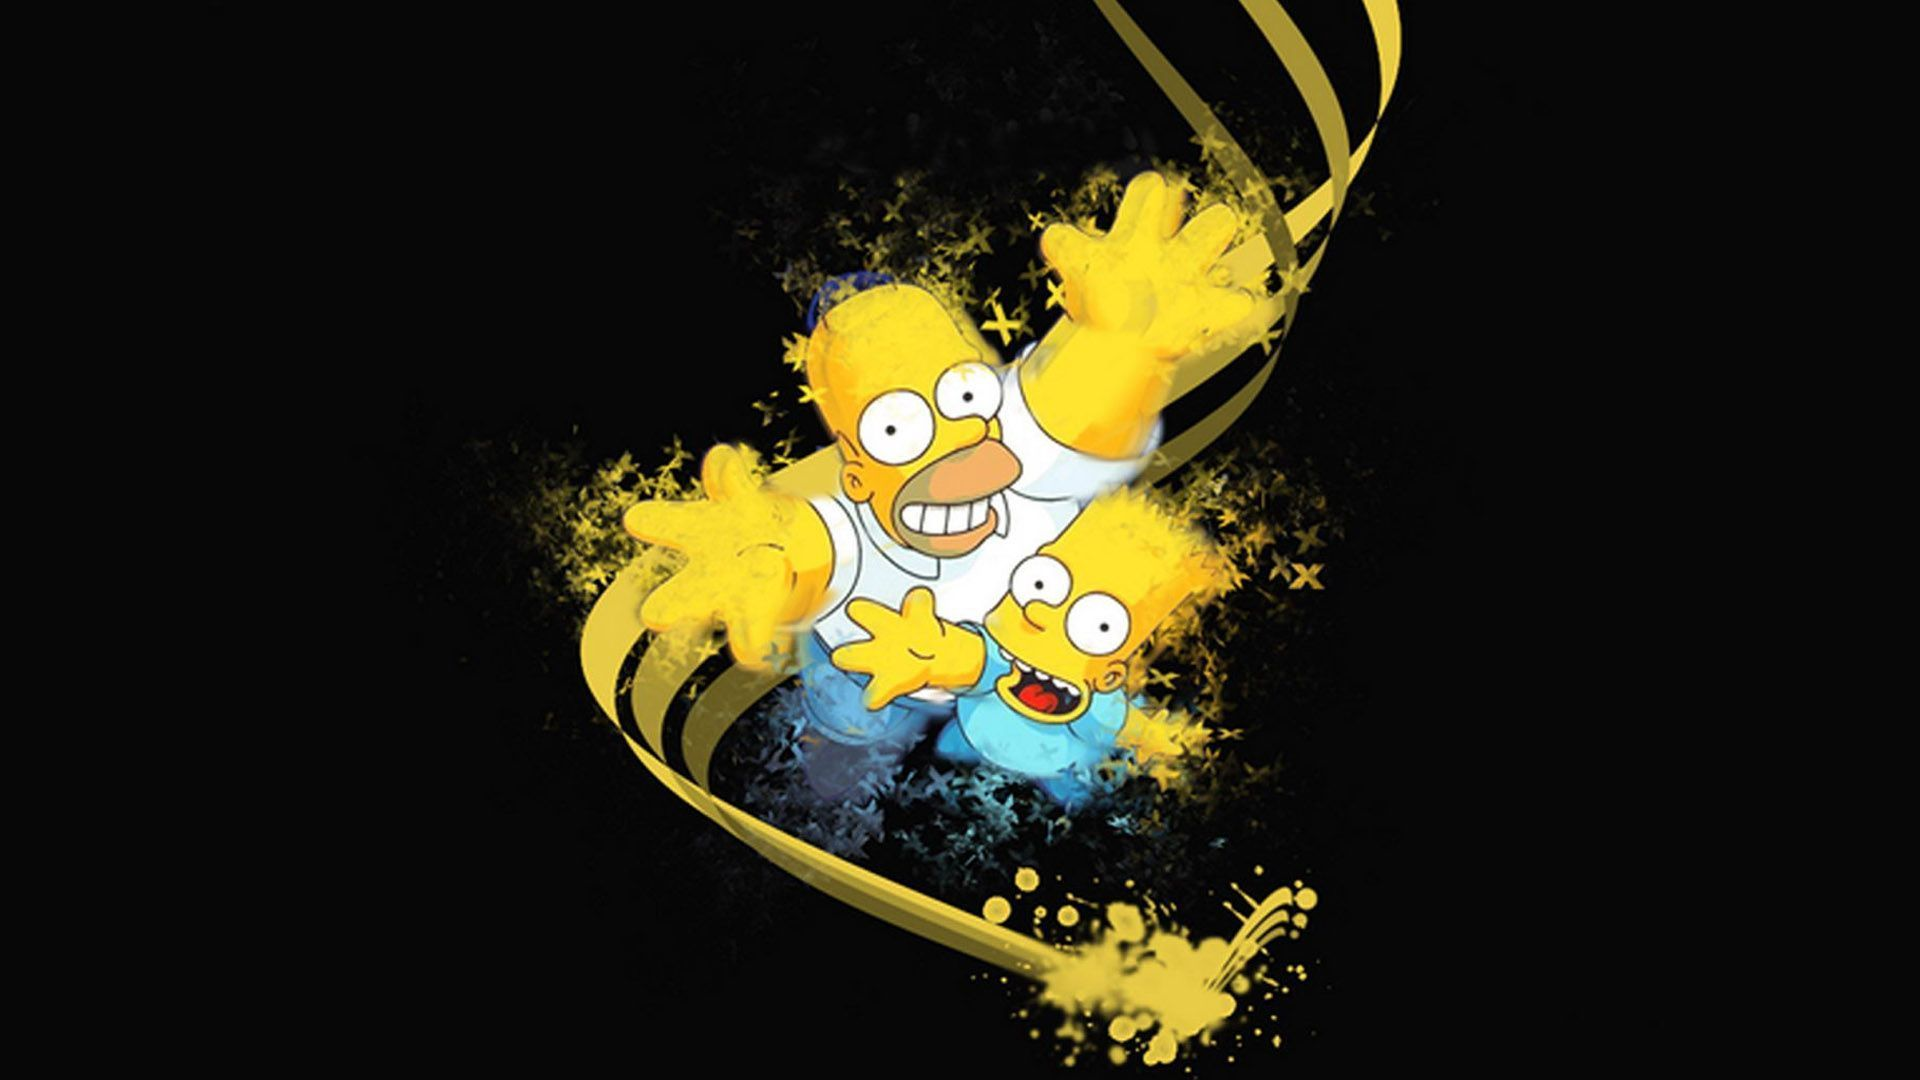 1920x1080 Homer Simpson Bart Simpson - Wallpaper, High Definition, High ...